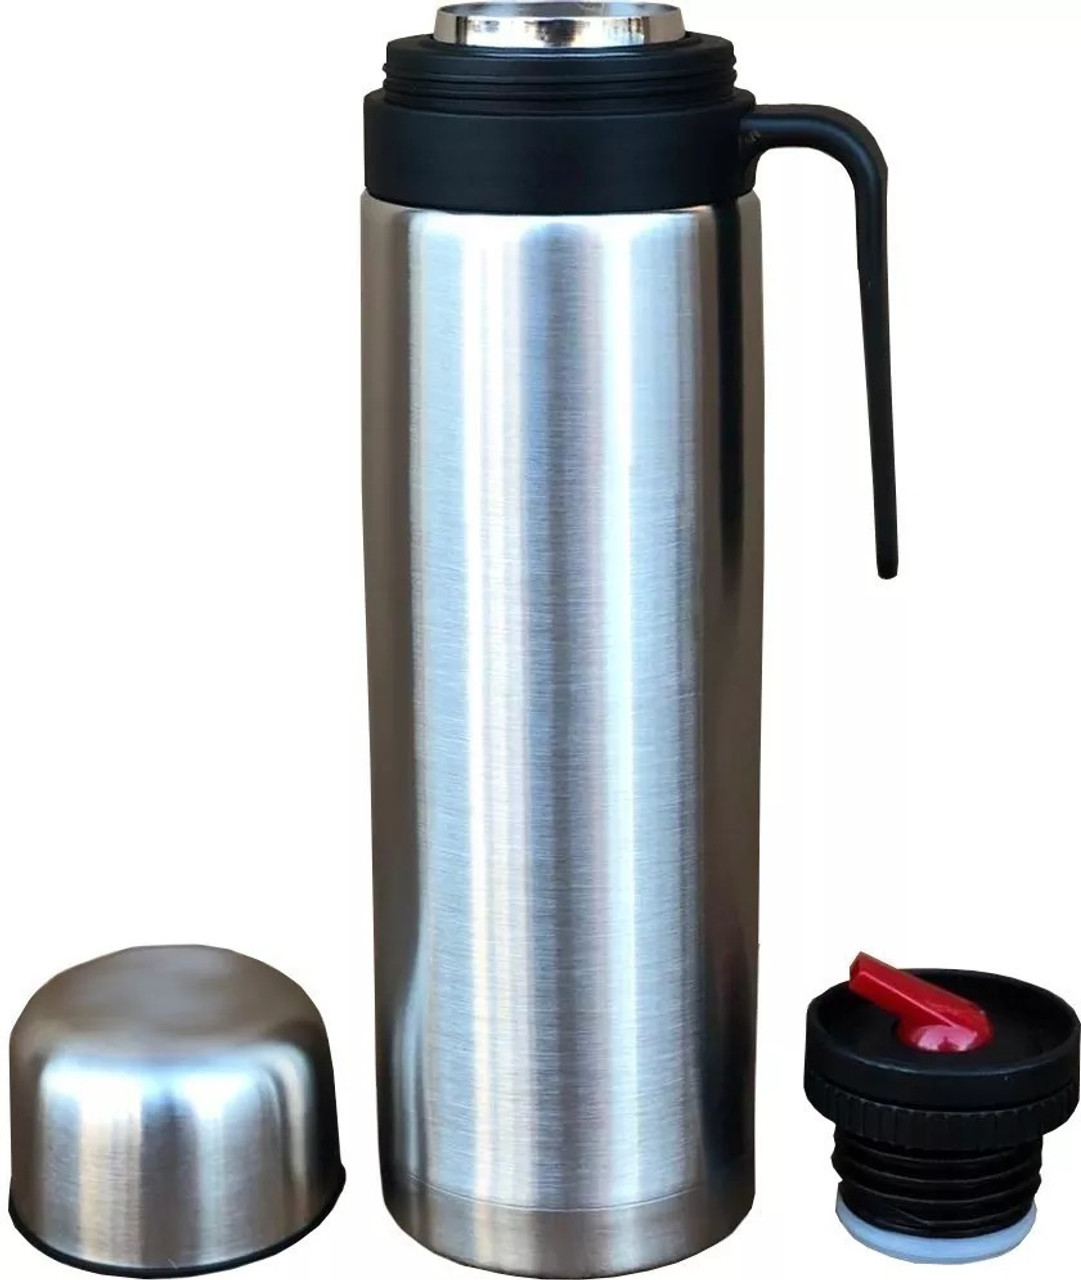 Mate thermos